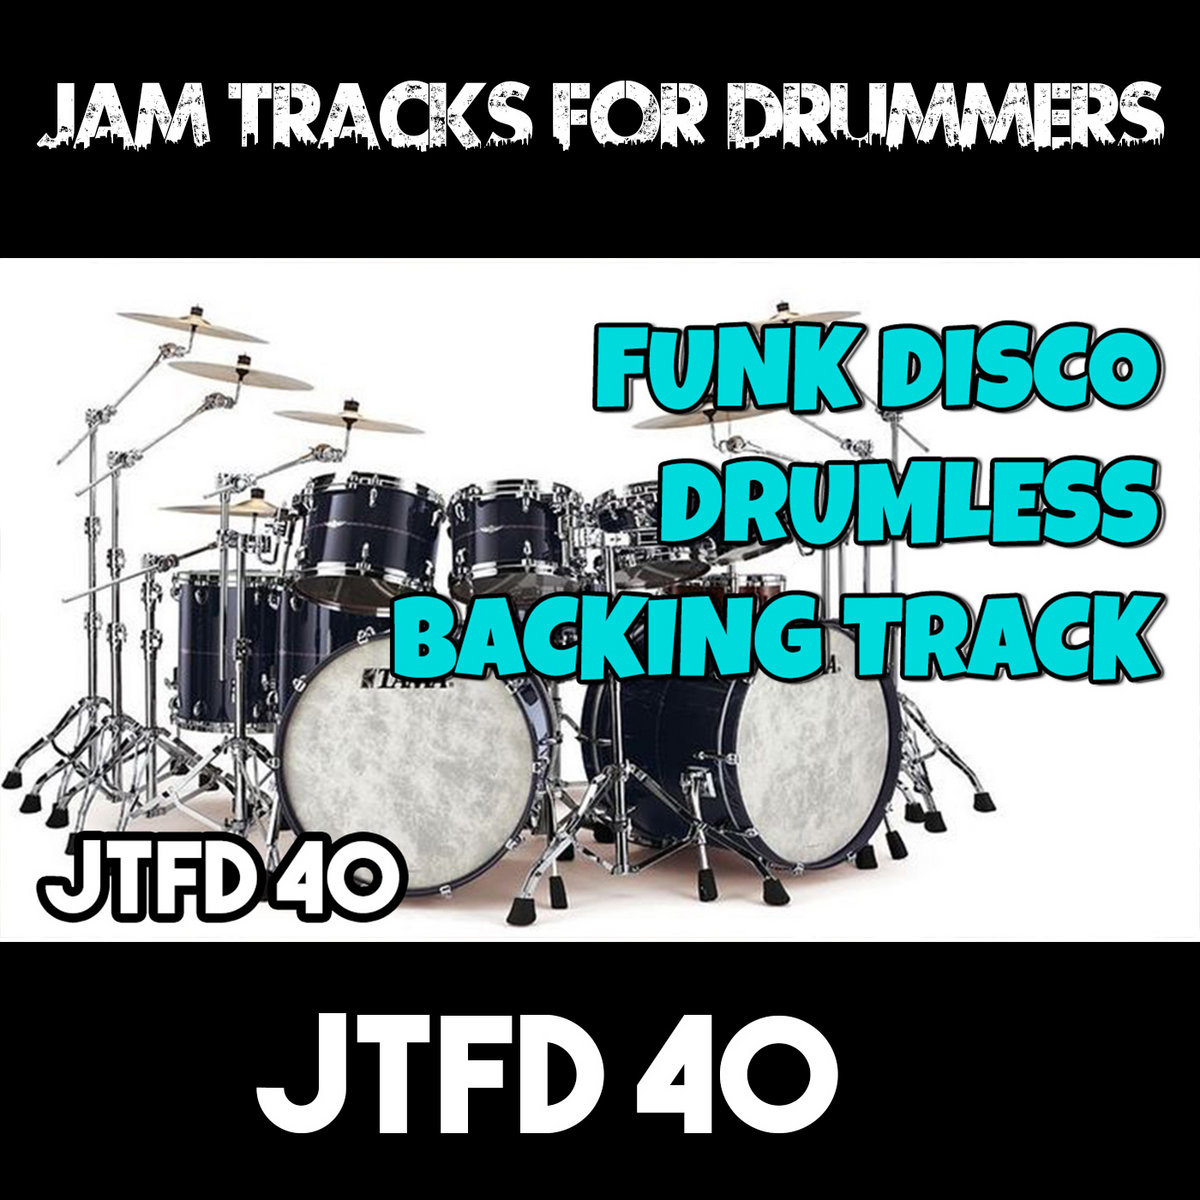 Funk Disco | Drumless Backing Track For Drummers | #BTFD 40 | Jam